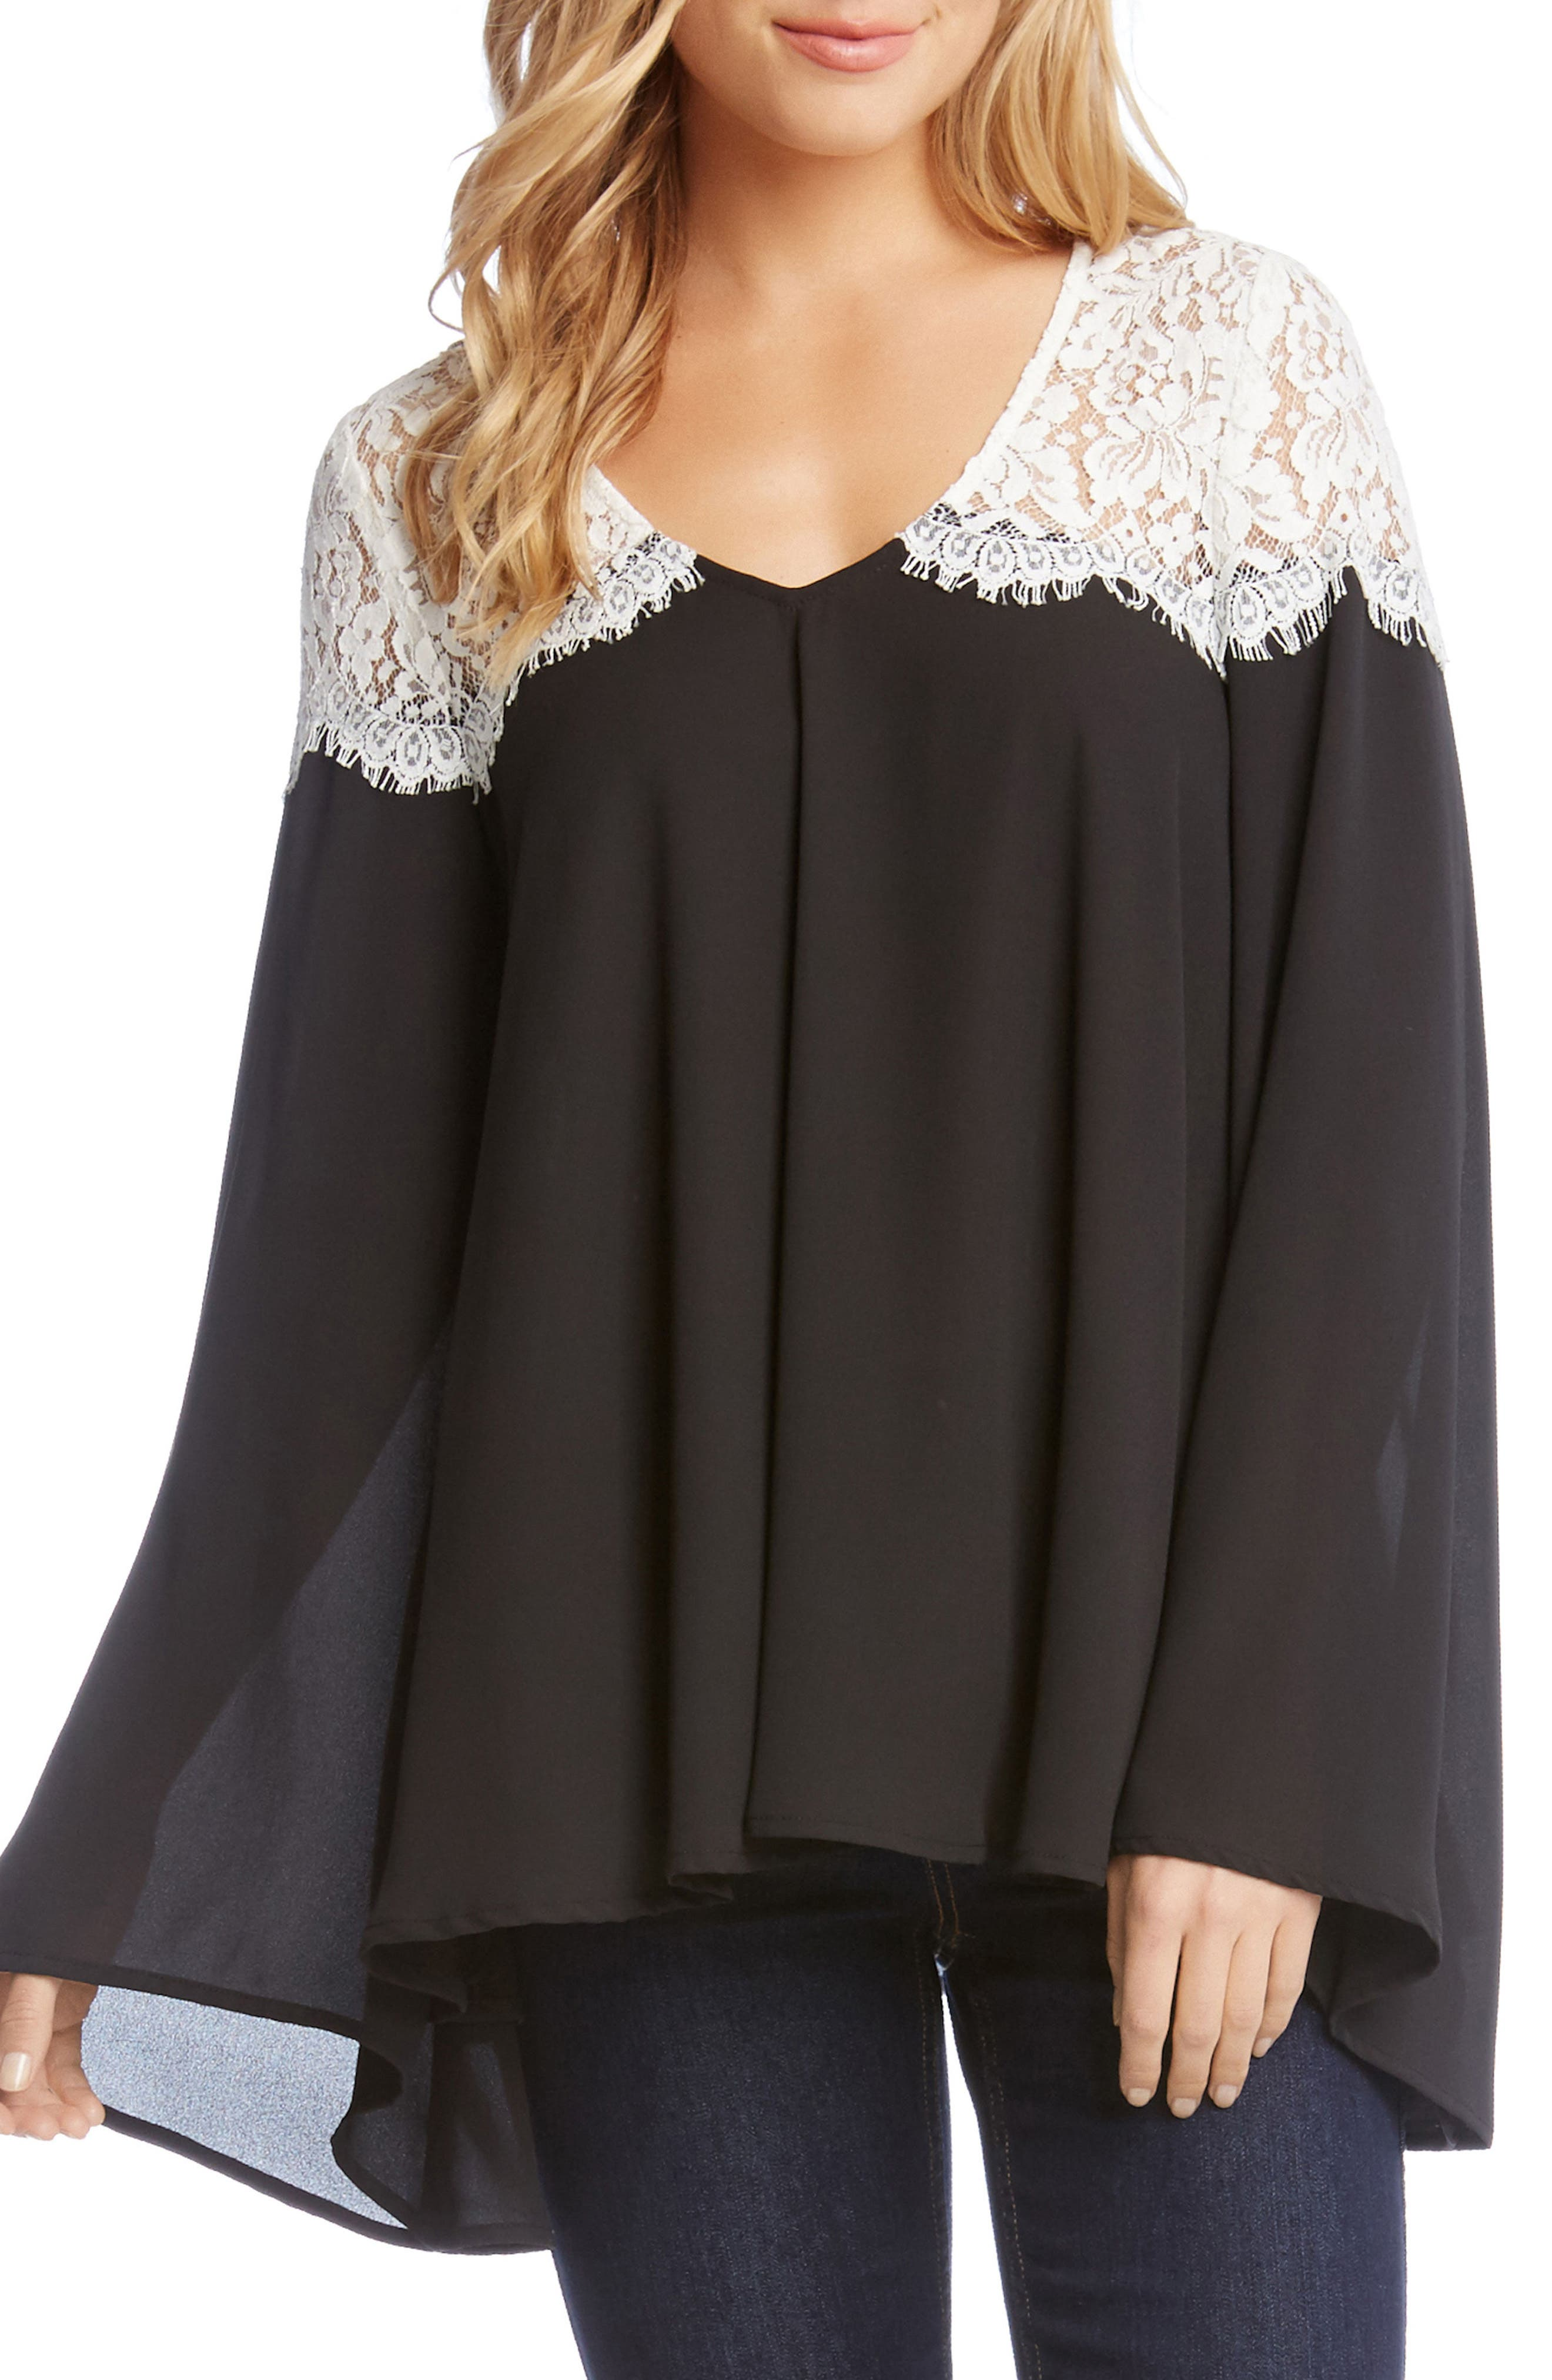 Contrast Lace Bell Sleeve Top,                             Main thumbnail 1, color,                             Black/ Off White